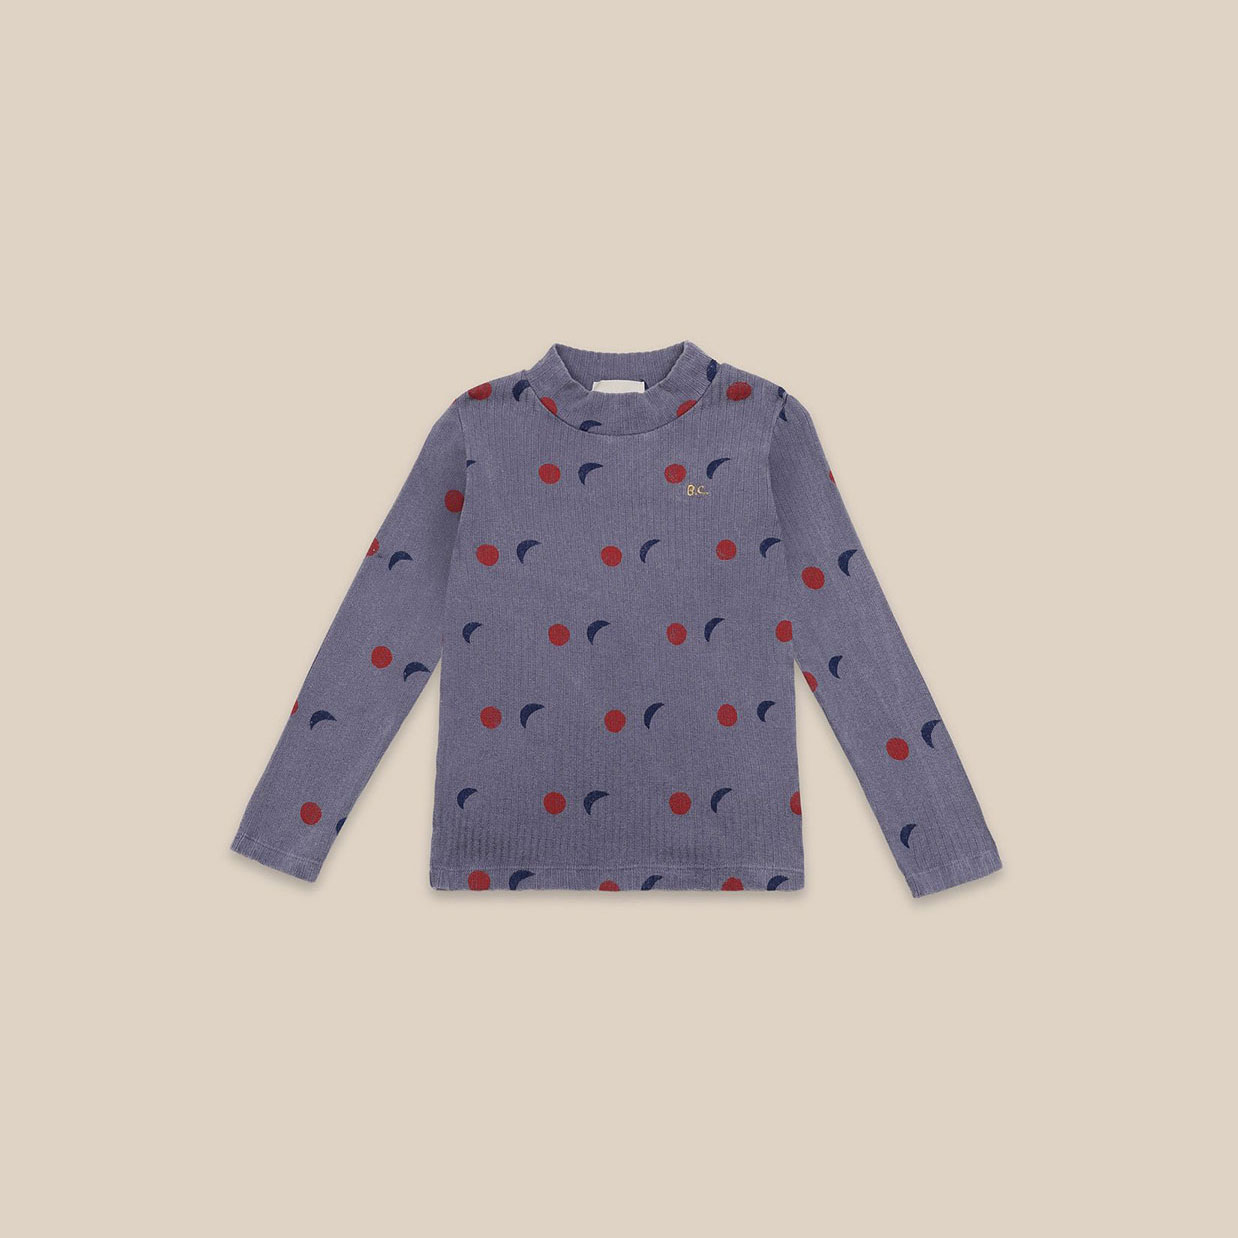 Bobo Choses - Night All Over Turtle Neck T-shirt